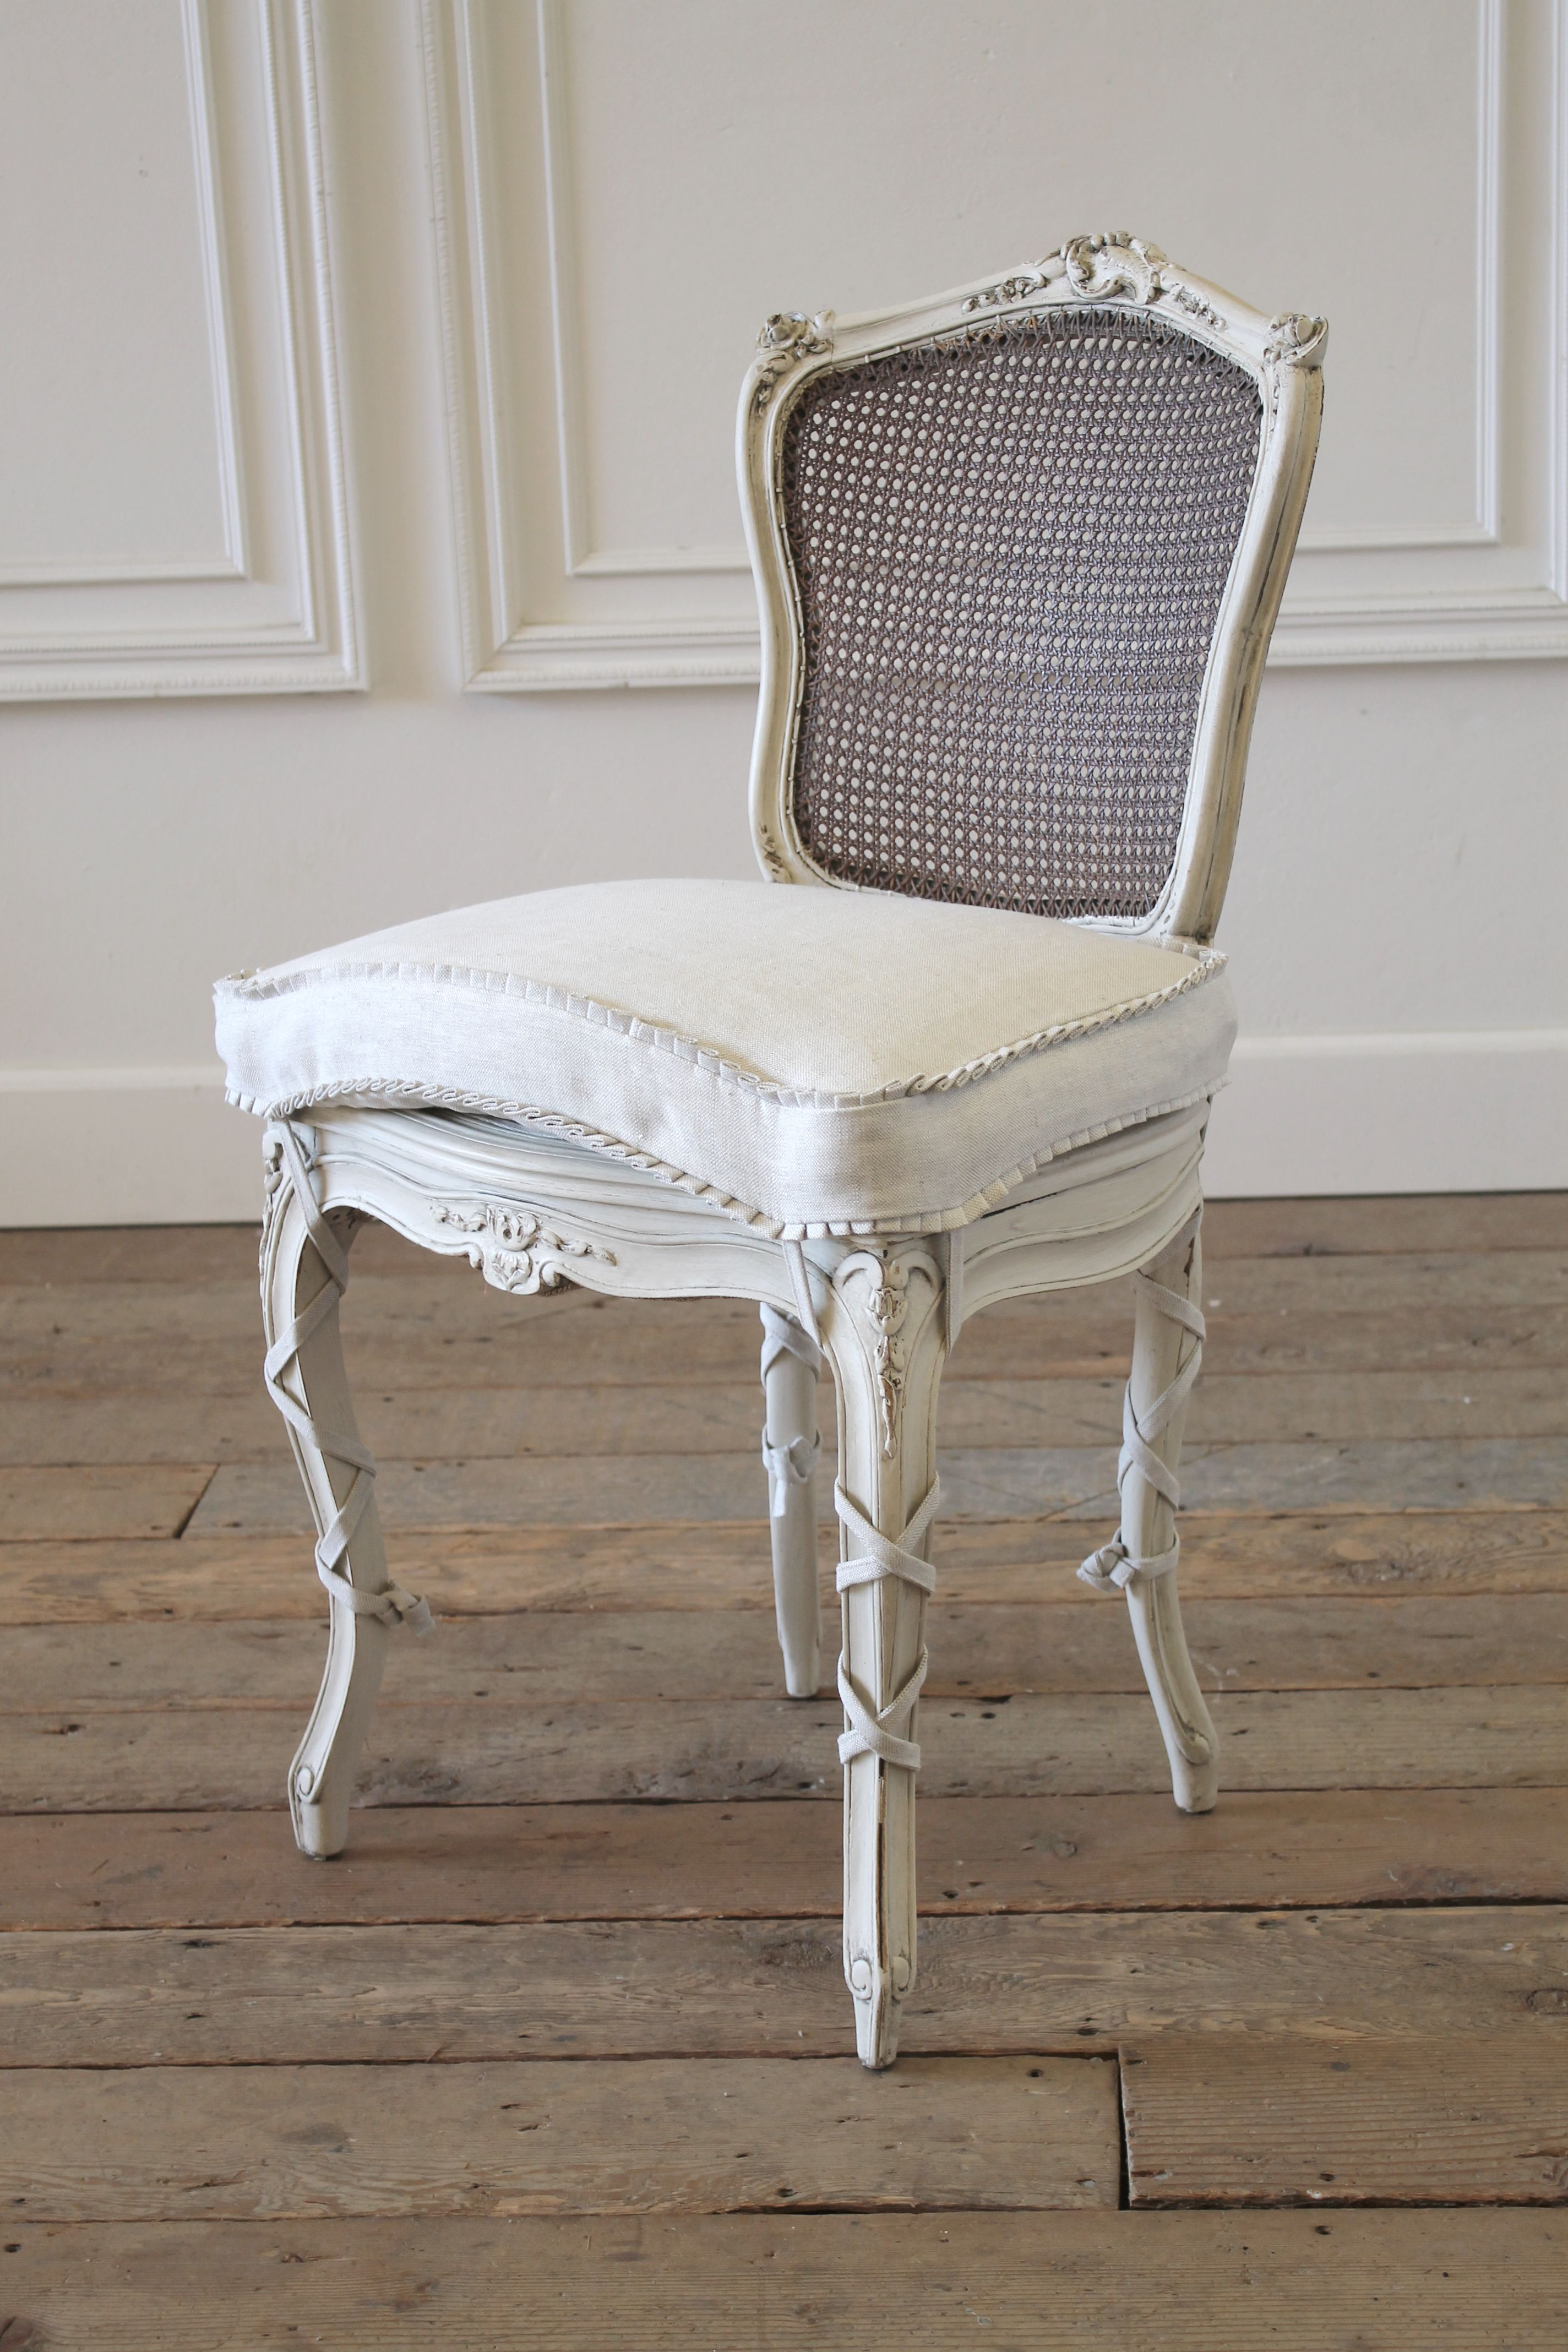 19th Century Wood And Cane Back French Country Style Vanity Chair 1 290 French Country Bathroom French Country Decorating French Country Bedrooms